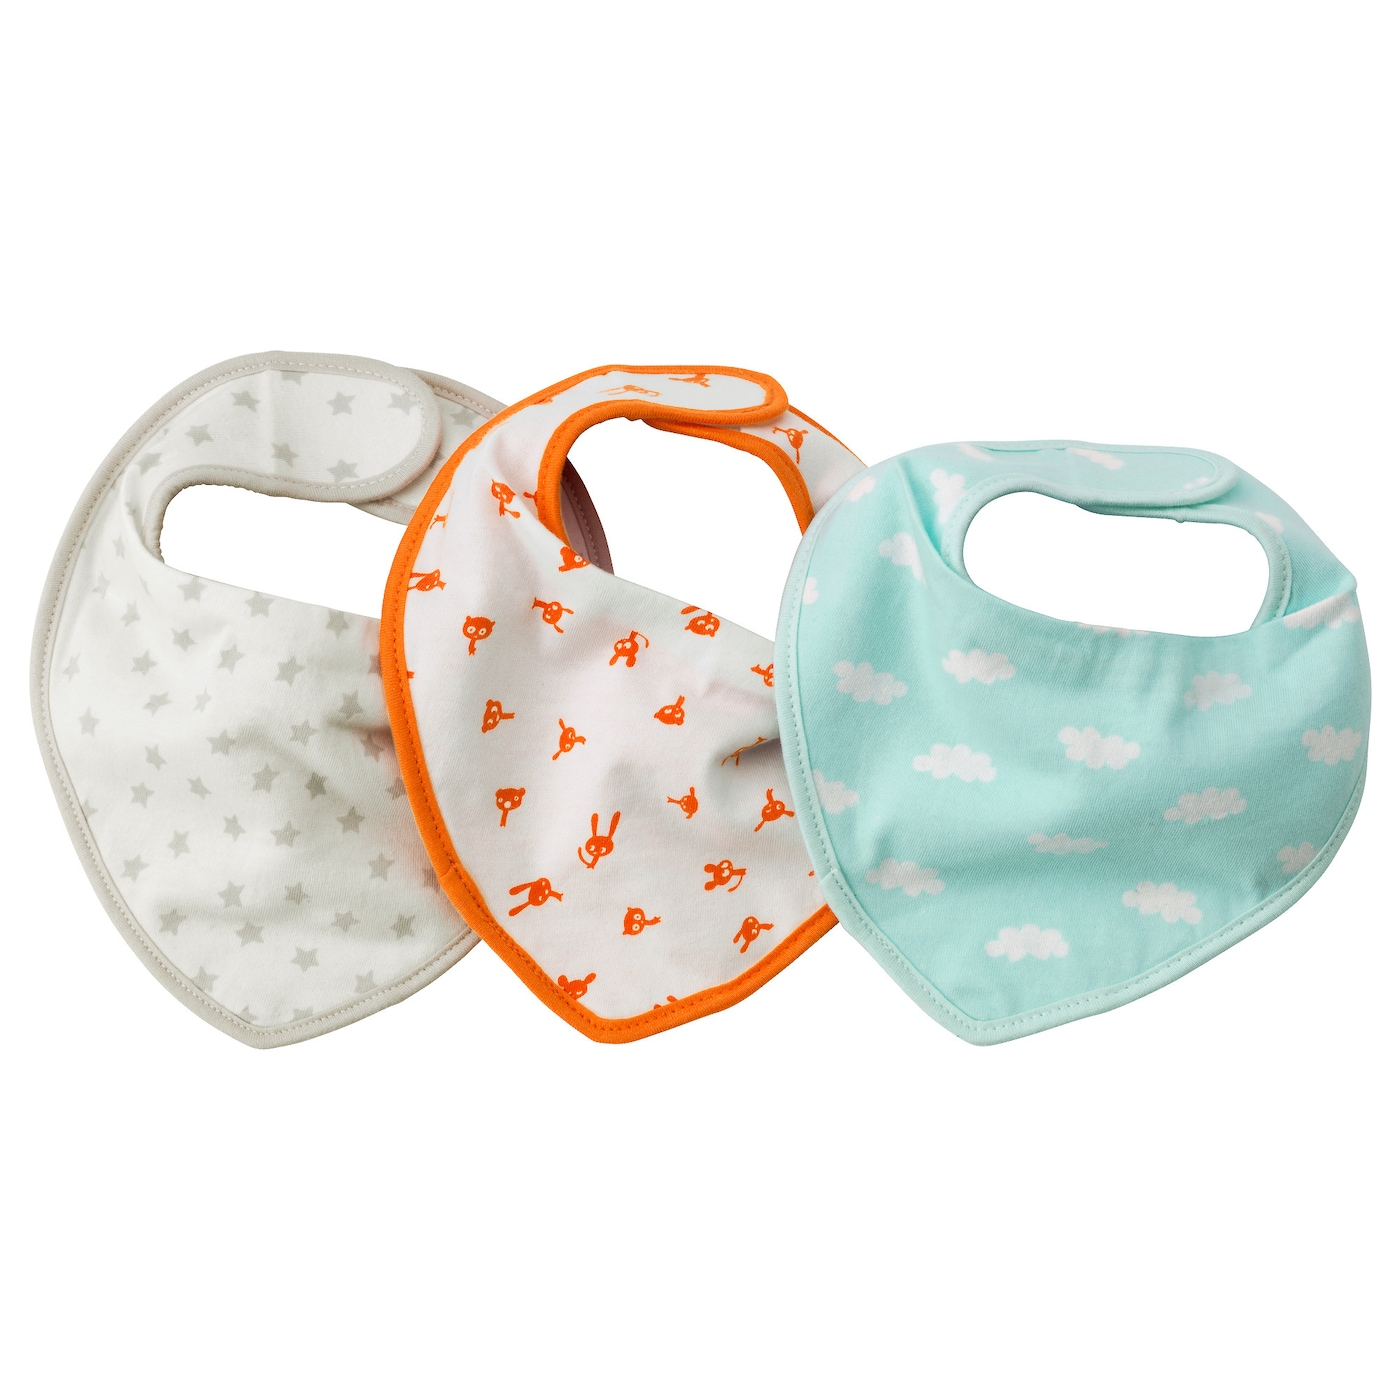 IKEA HIMMELSK dribble bib The touch and close fastening makes it easy to put on and remove.